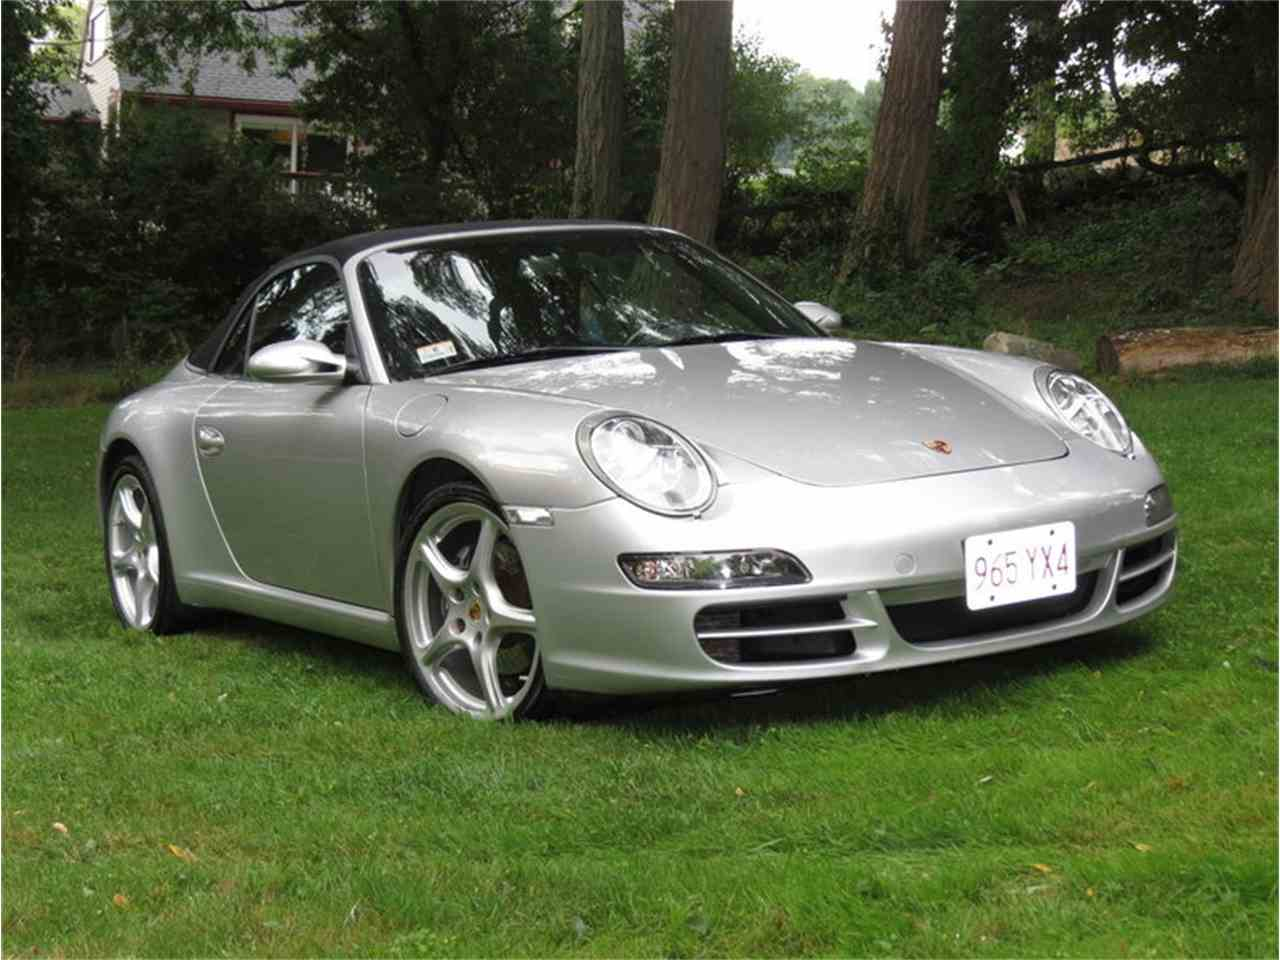 2005 Porsche 911 Carrera for Sale - CC-903410